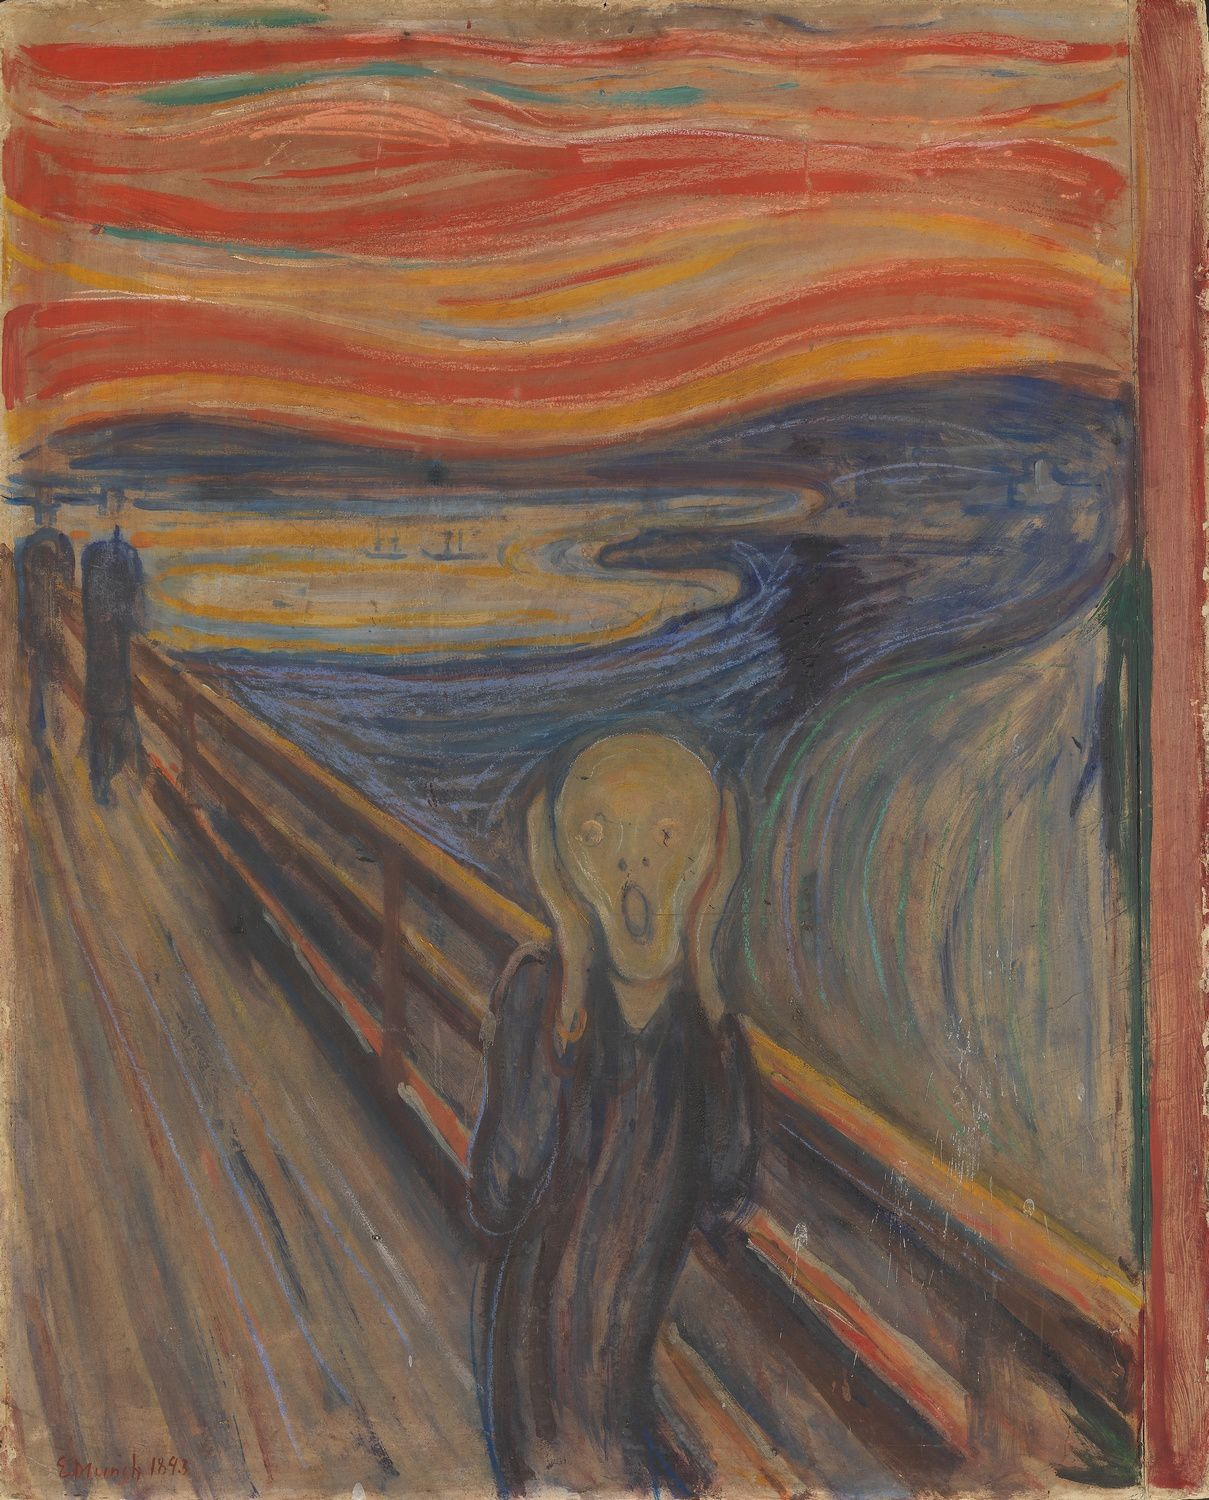 Edvard Munch, 1893, The Scream, oil, tempera and pastel on cardboard, 91 x 73 cm, National Gallery of Norway